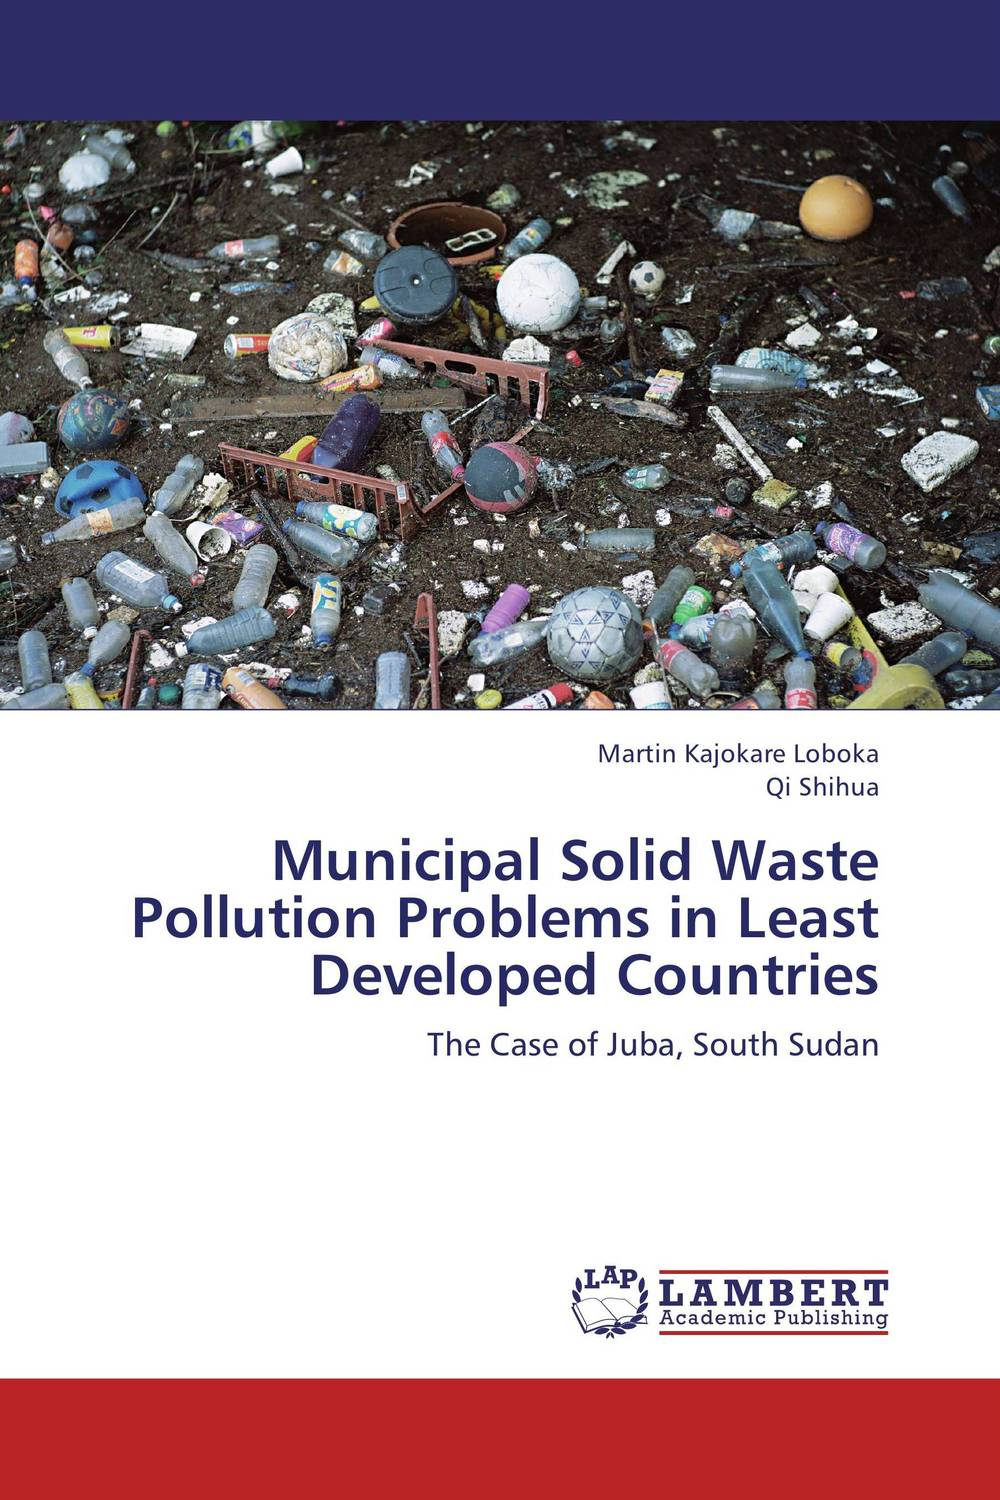 Municipal Solid Waste Pollution Problems in Least Developed Countries biodegradation of coffee pulp waste by white rotters